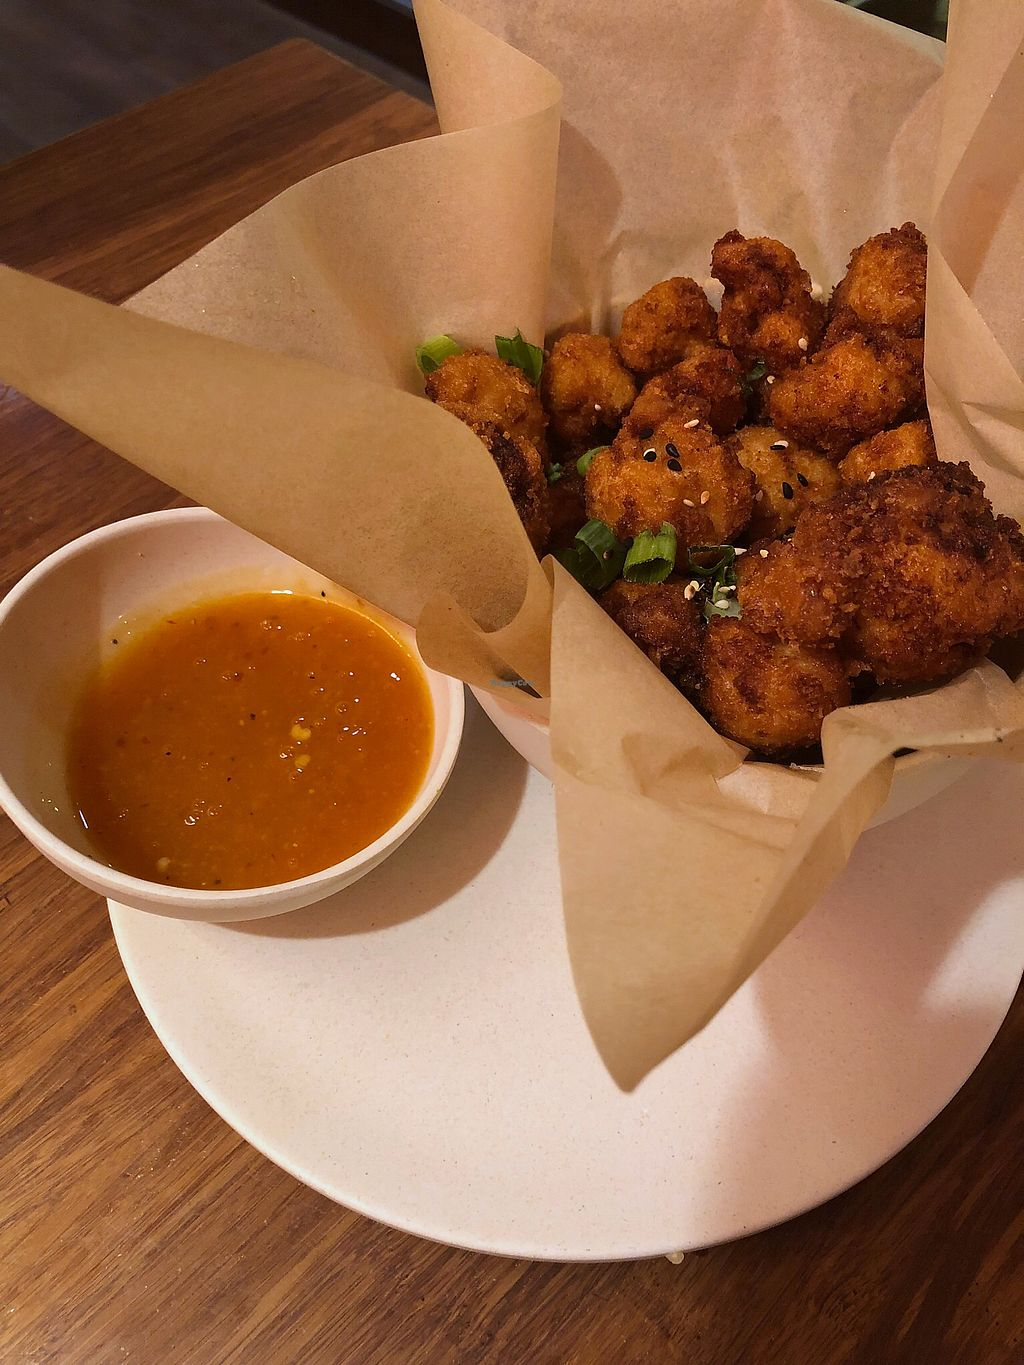 """Photo of Veggie Grill - University Village  by <a href=""""/members/profile/KerryElise"""">KerryElise</a> <br/>Crispy cauliflower with orange sauce  <br/> March 30, 2018  - <a href='/contact/abuse/image/34627/378335'>Report</a>"""